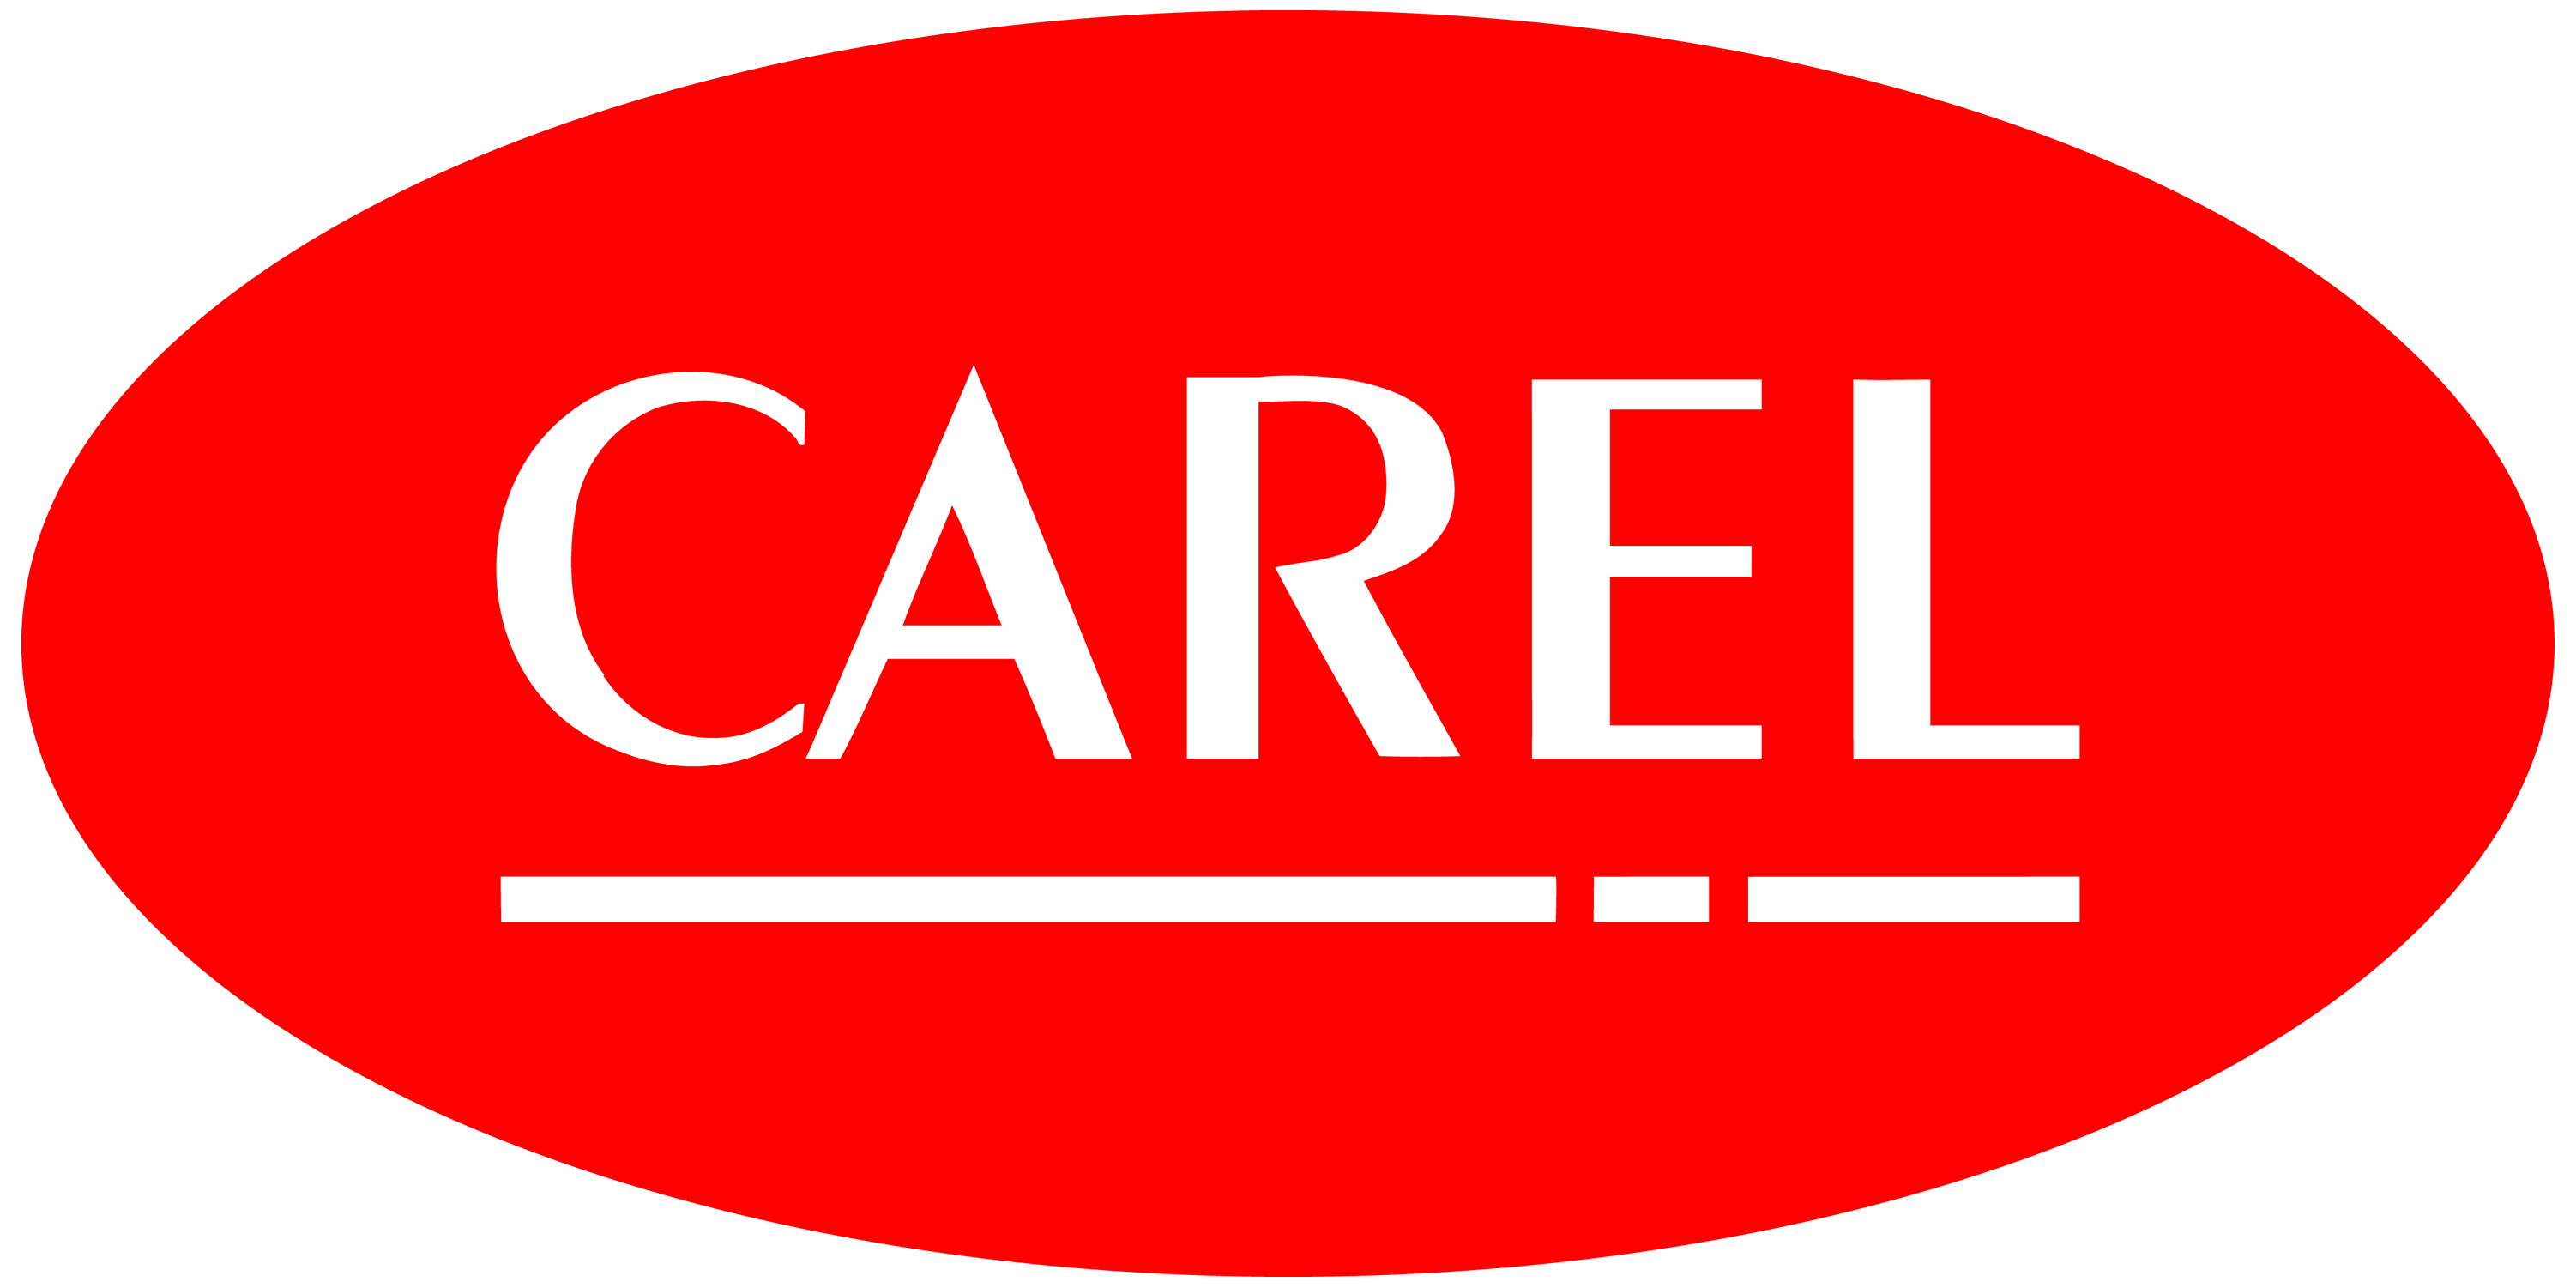 CAREL - Company Profile